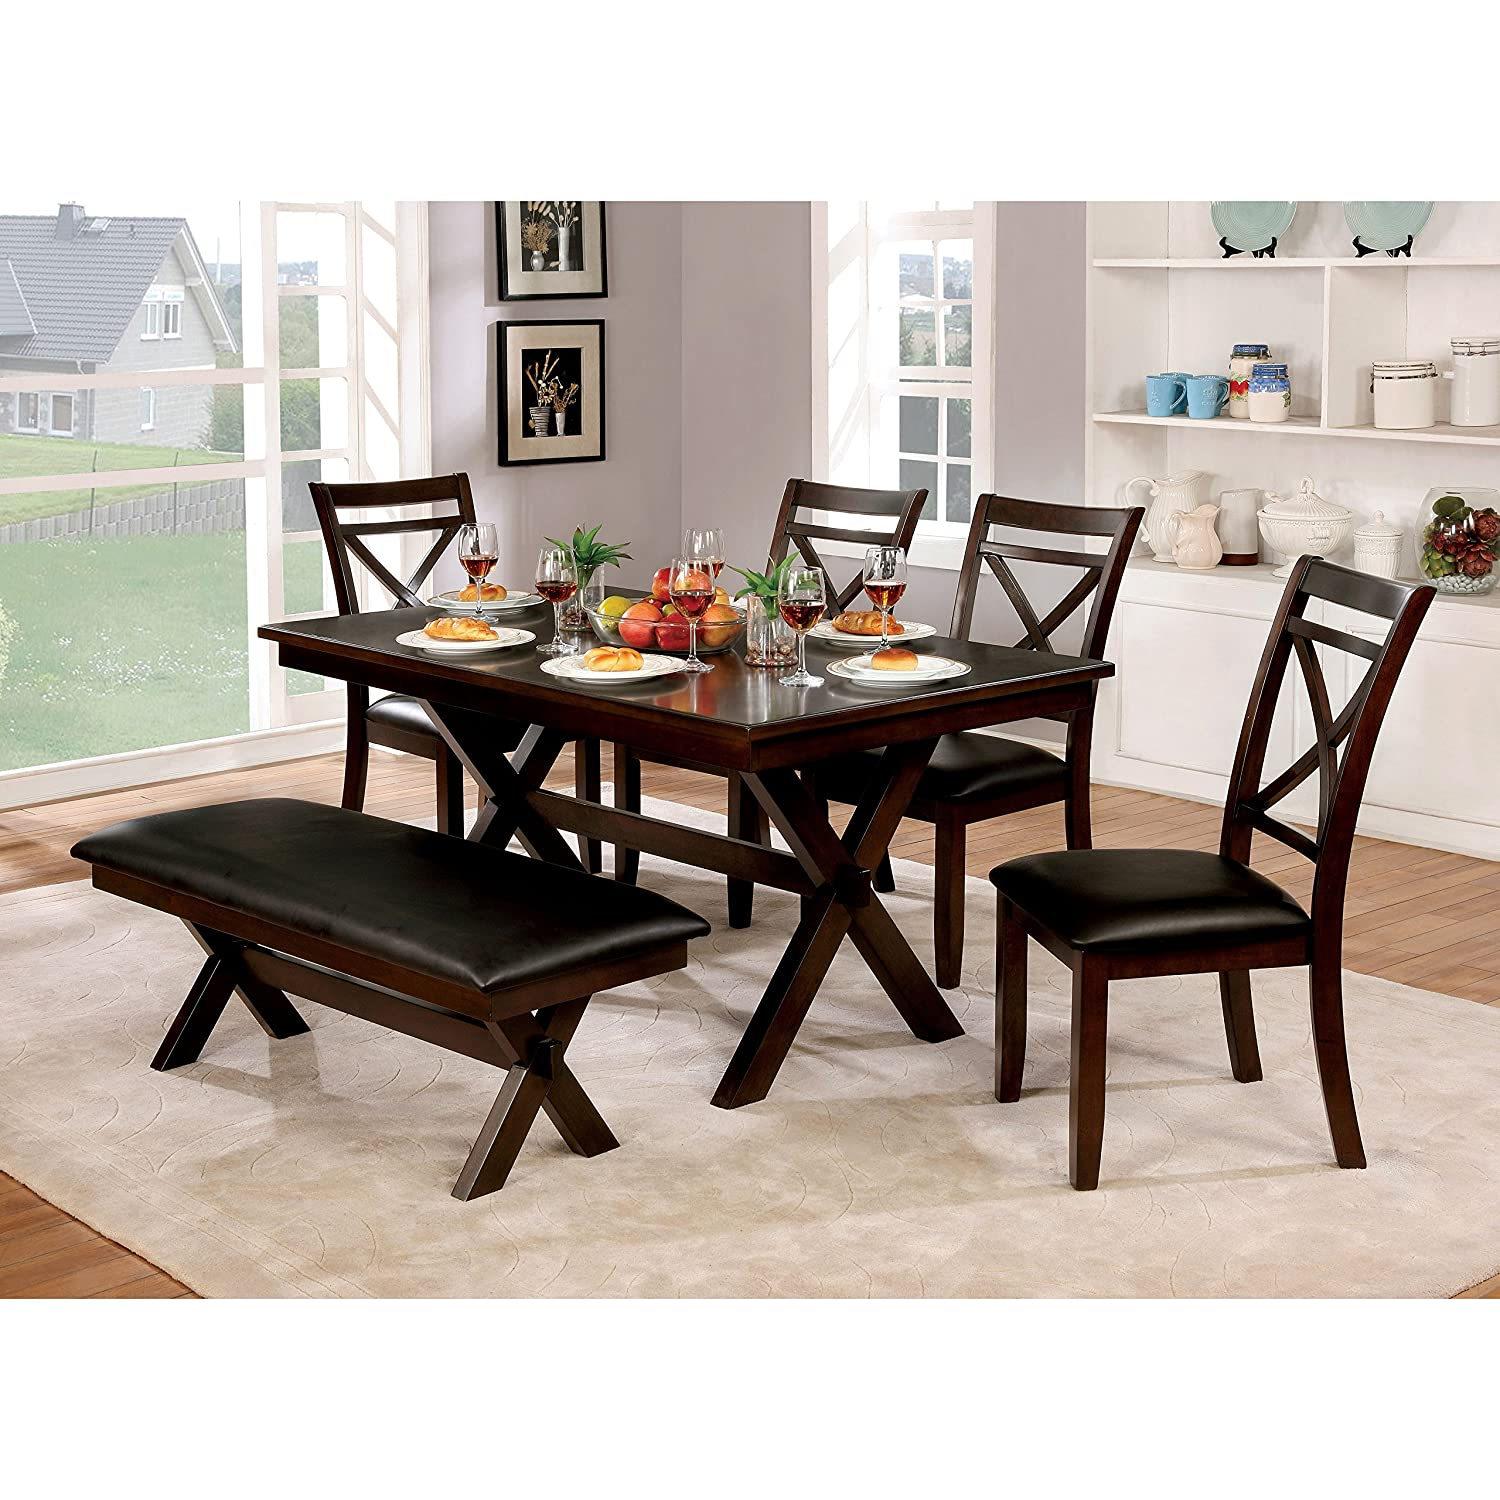 Amazon Furniture of America Clevelan Dark Cherry Wood 60 inch